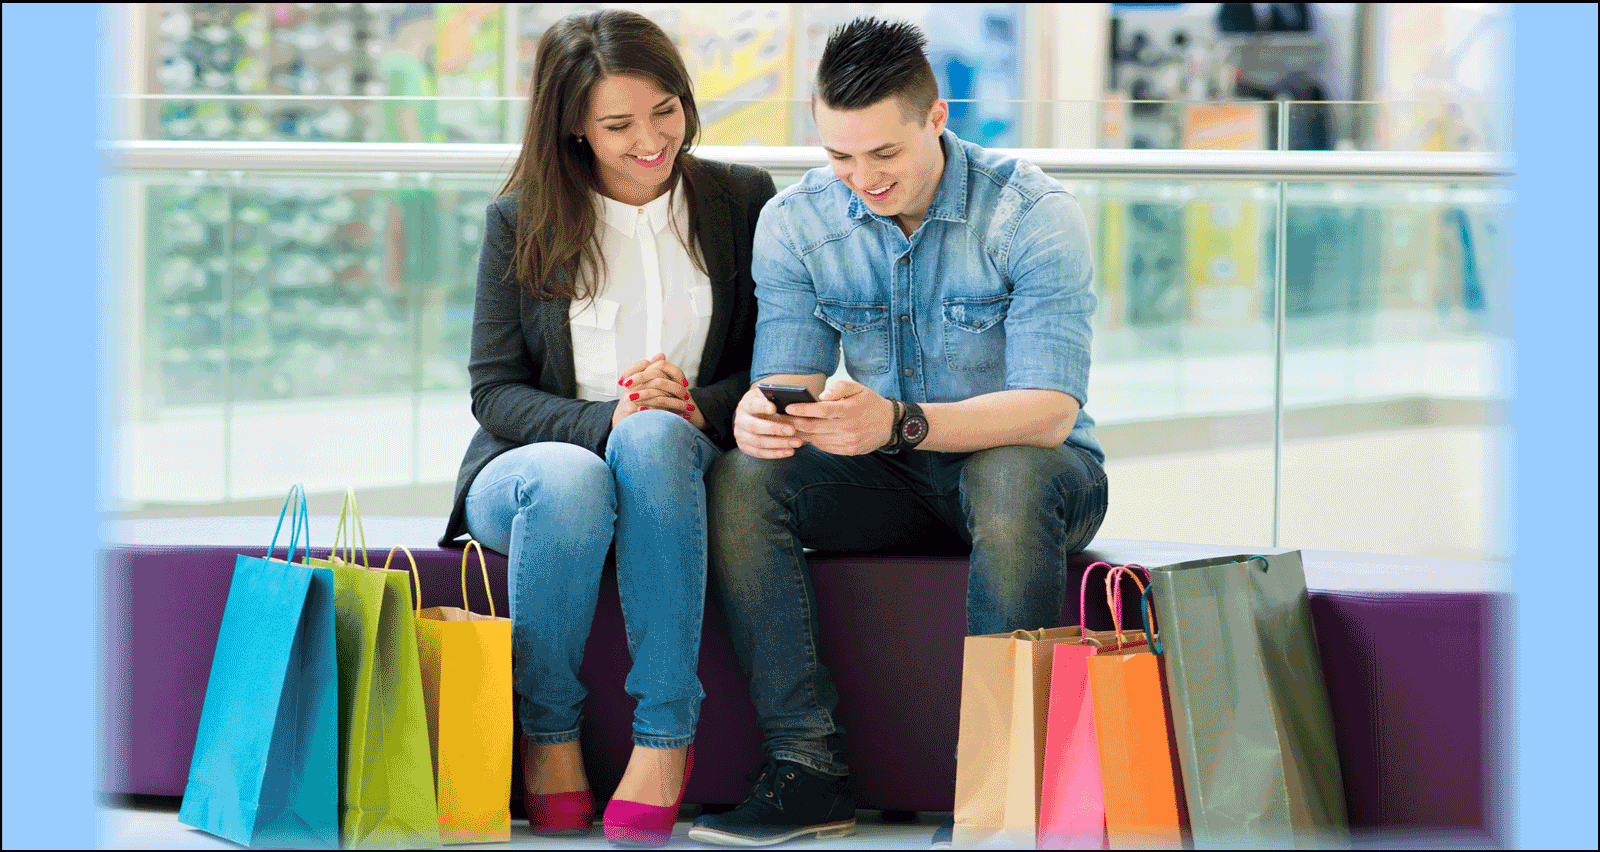 couple looking at phone with shopping bags on ground